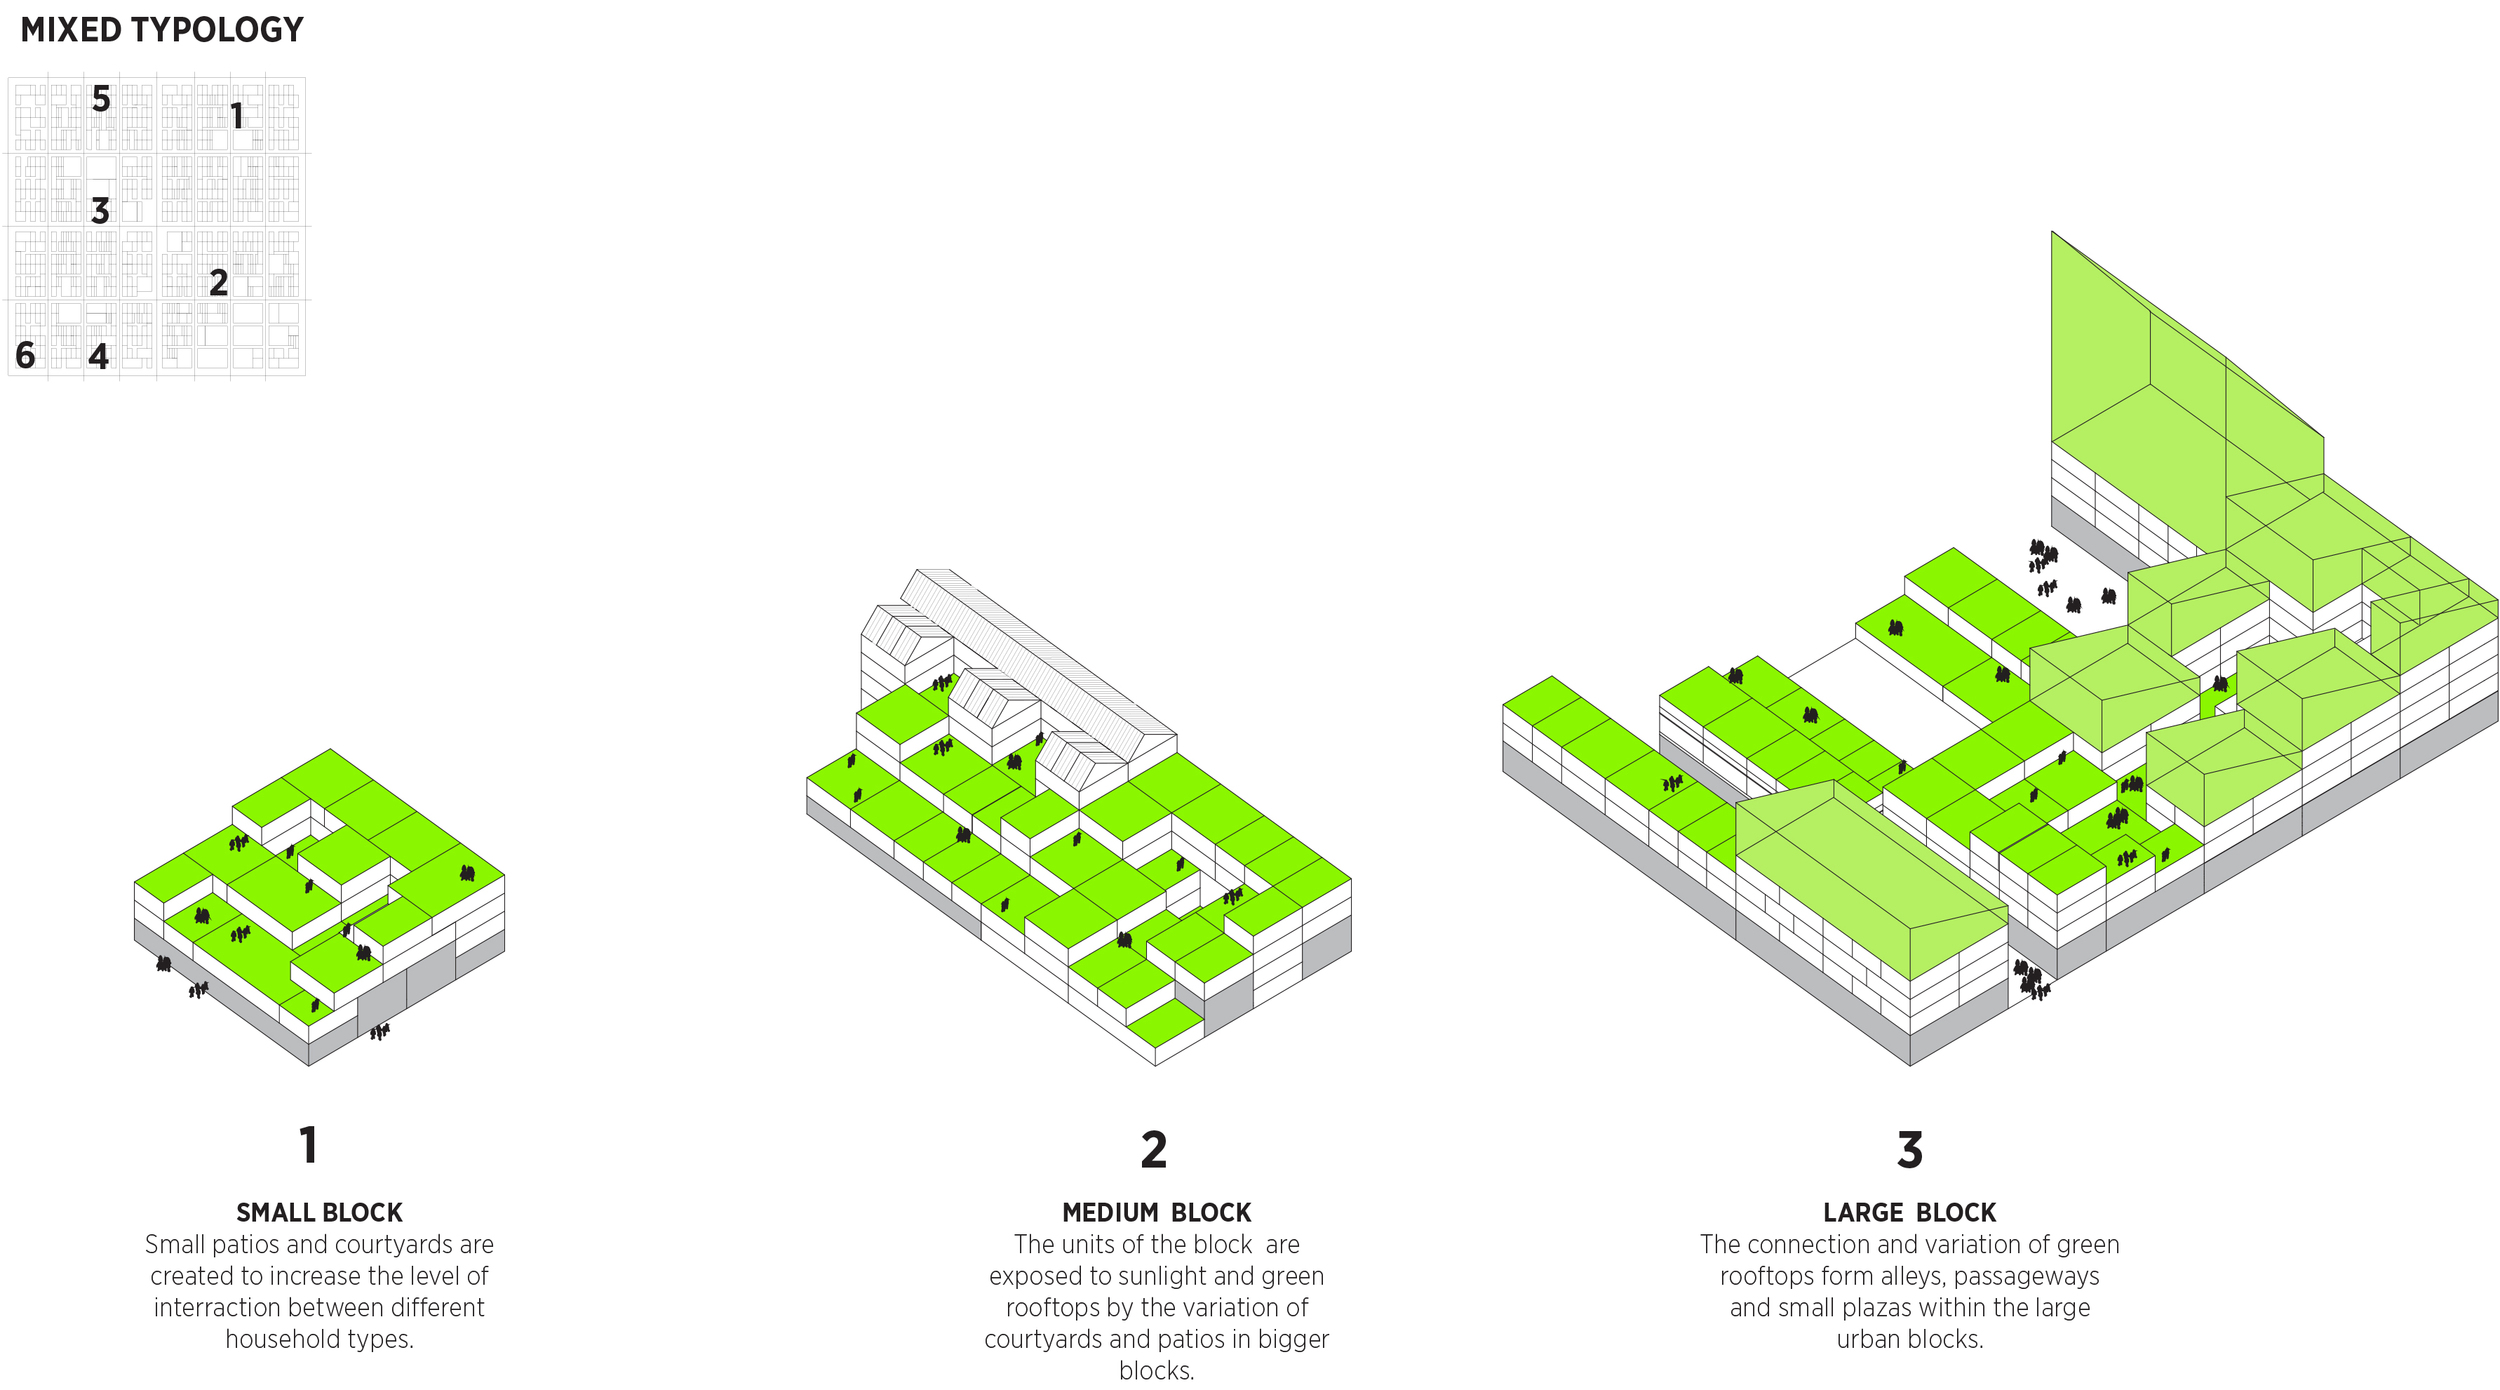 Mixed typology of housing in Self Sufficient Neighborhood Prototype